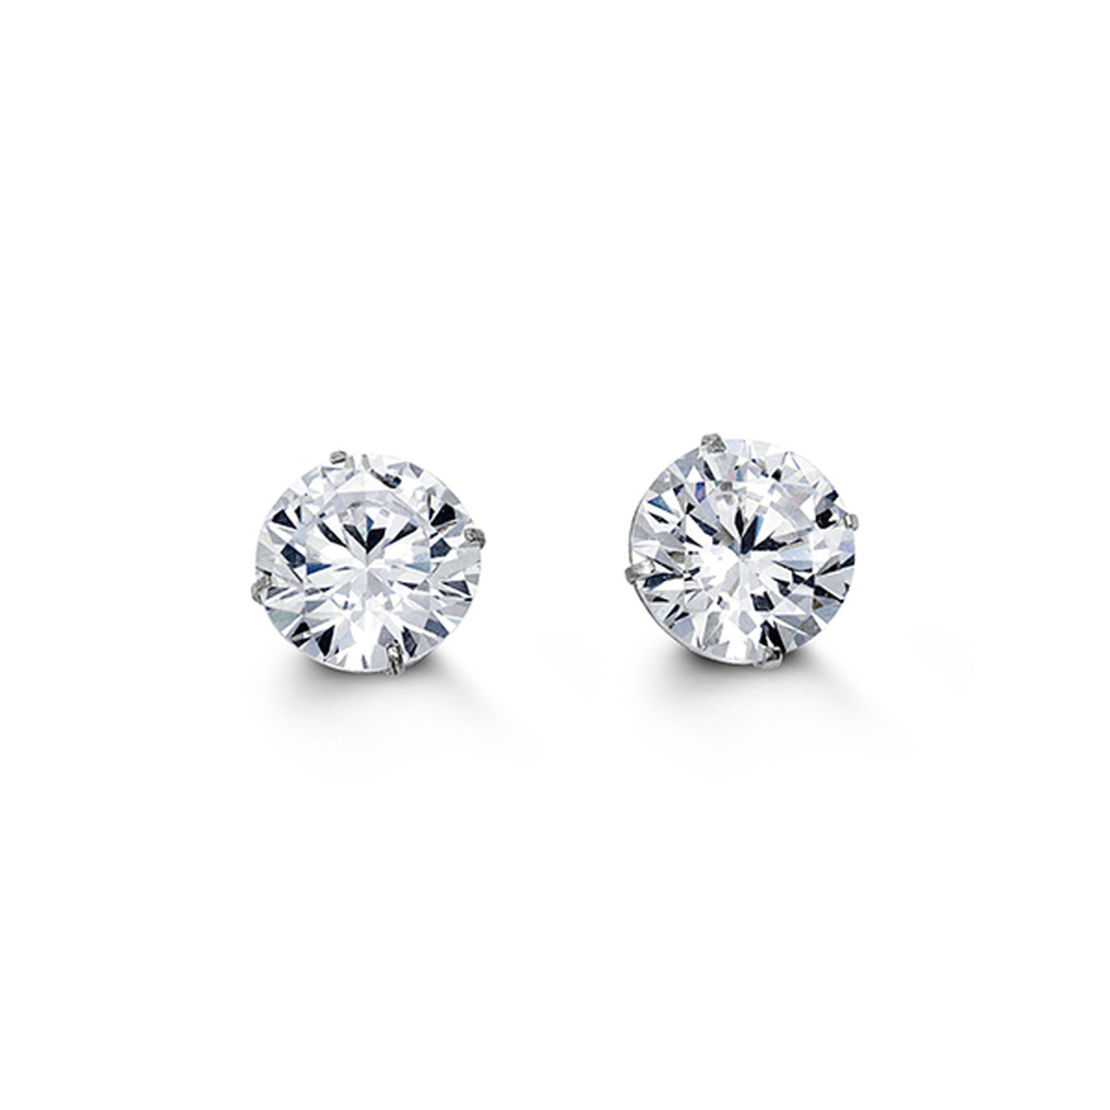 White Gold Brilliant Cut Cubic Zirconia Stud Earrings